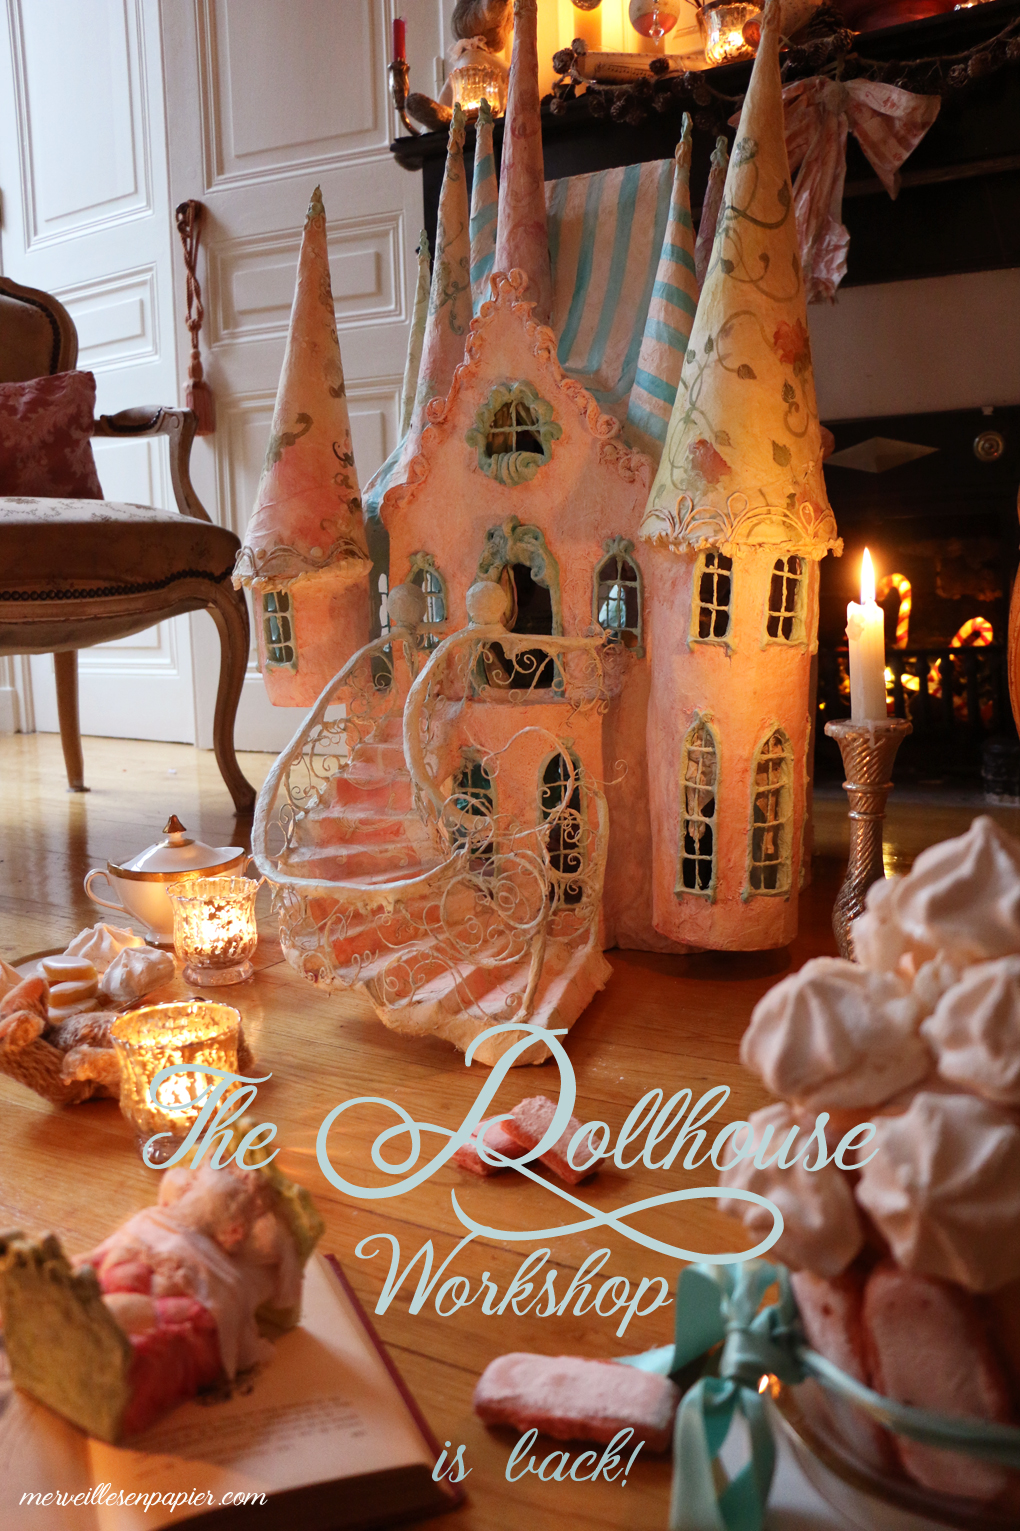 The dollhouse workshop is back today !